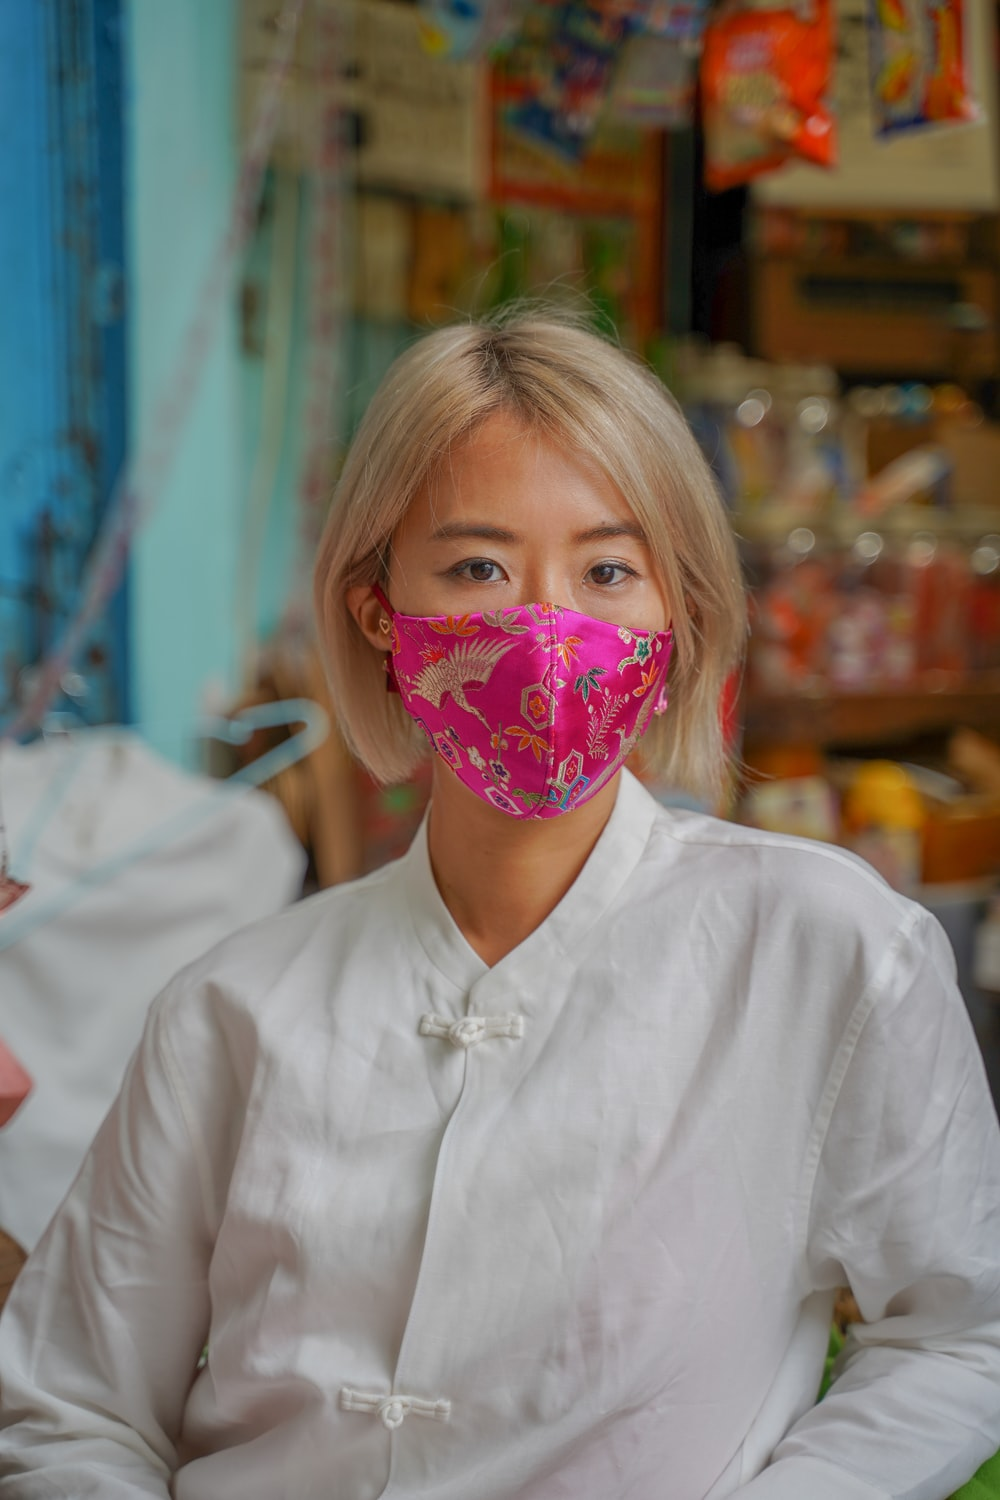 girl in white button up shirt with pink and white floral mask